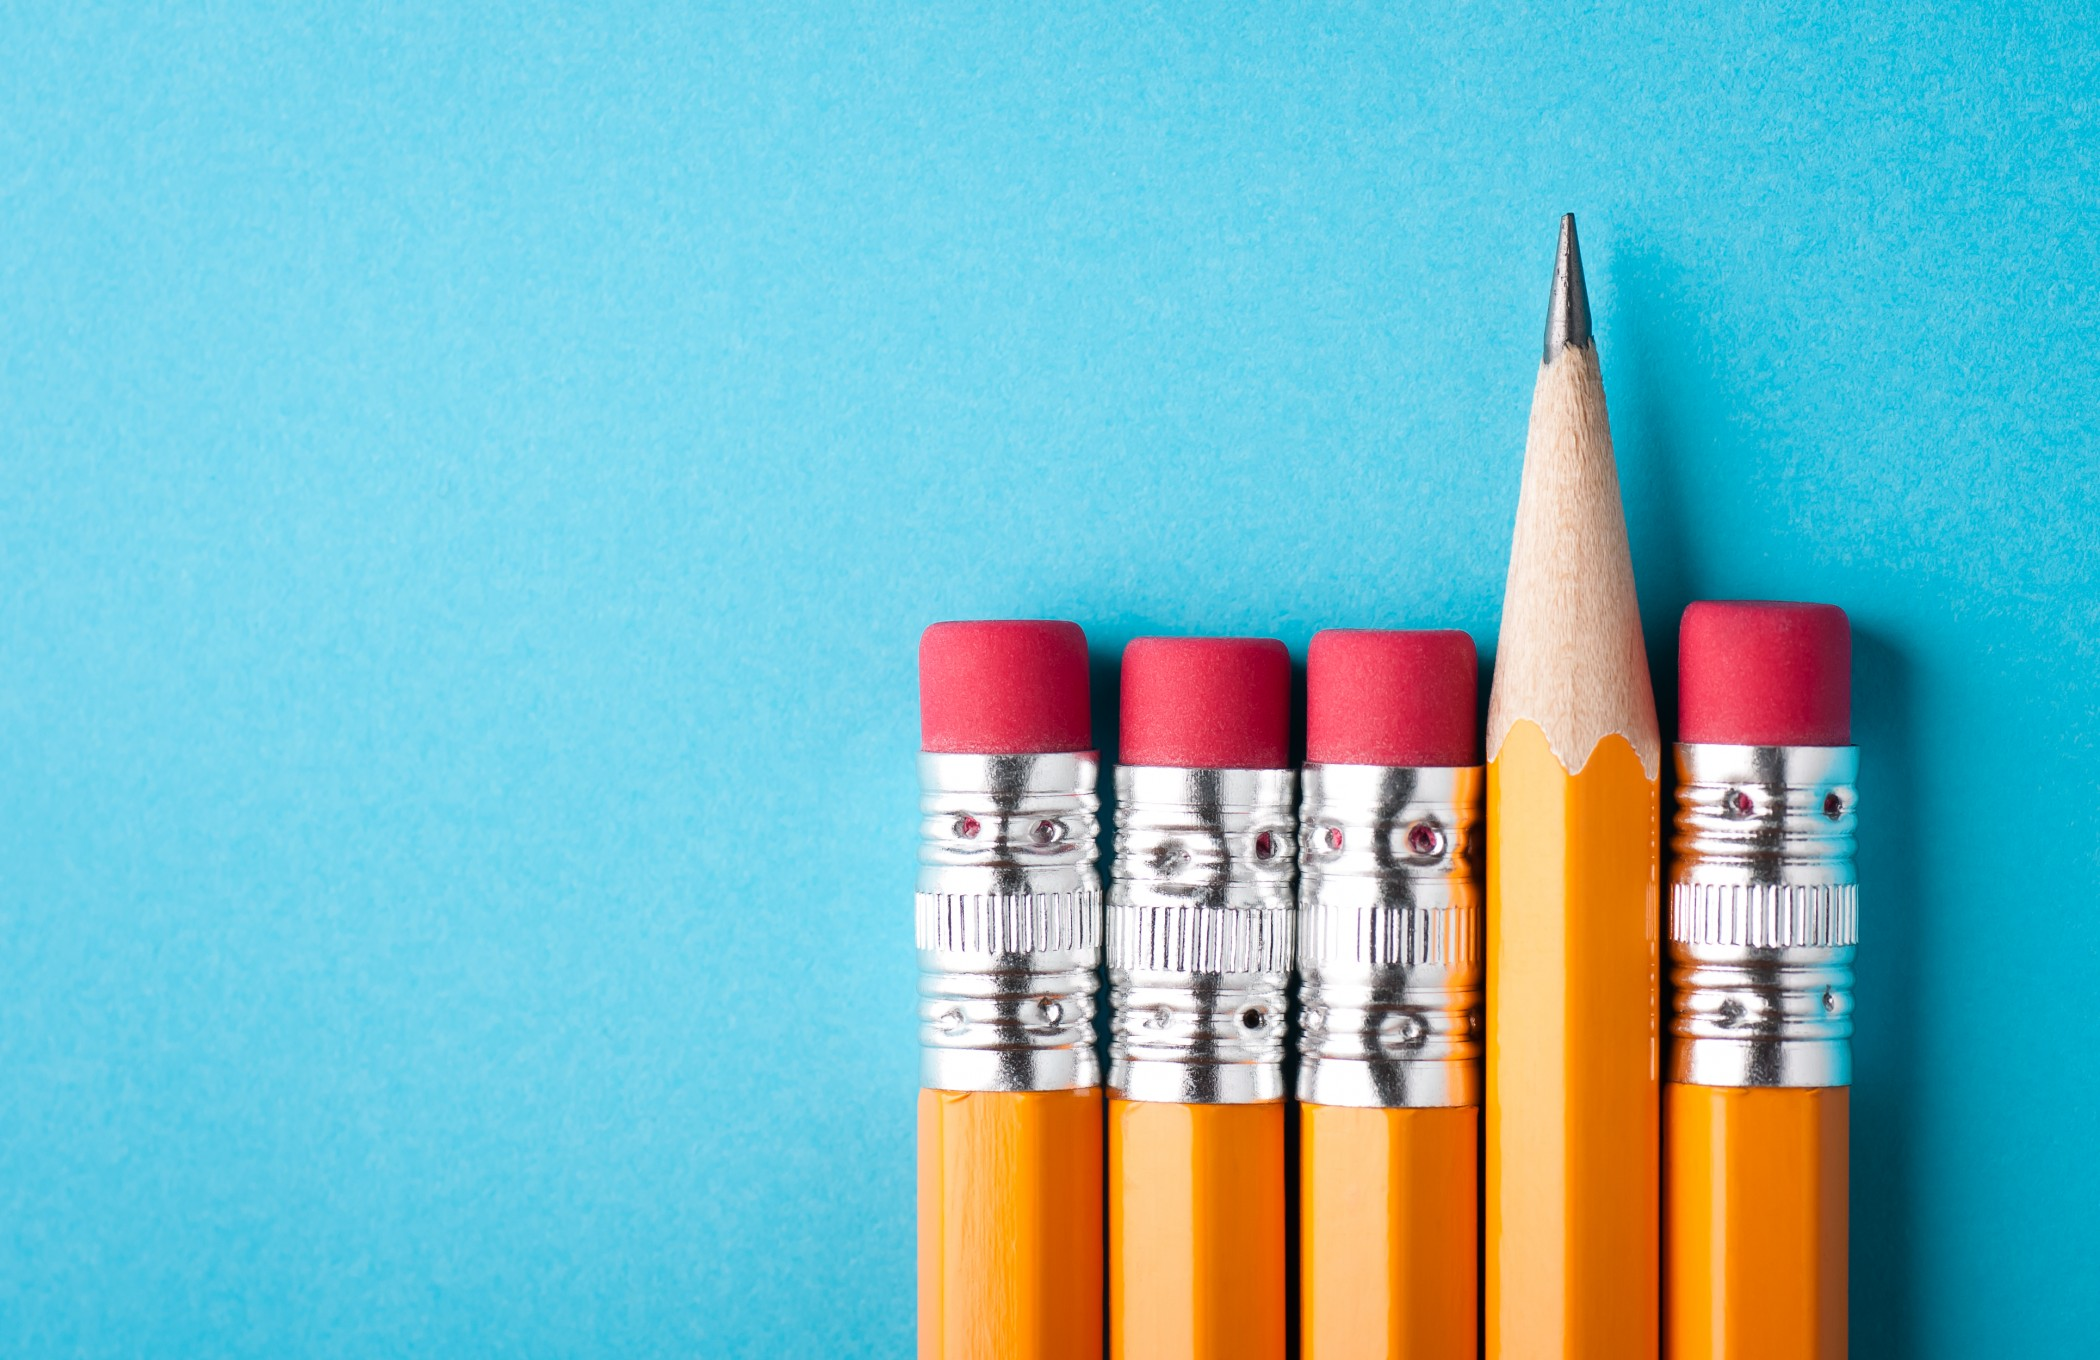 Pencils with blue background